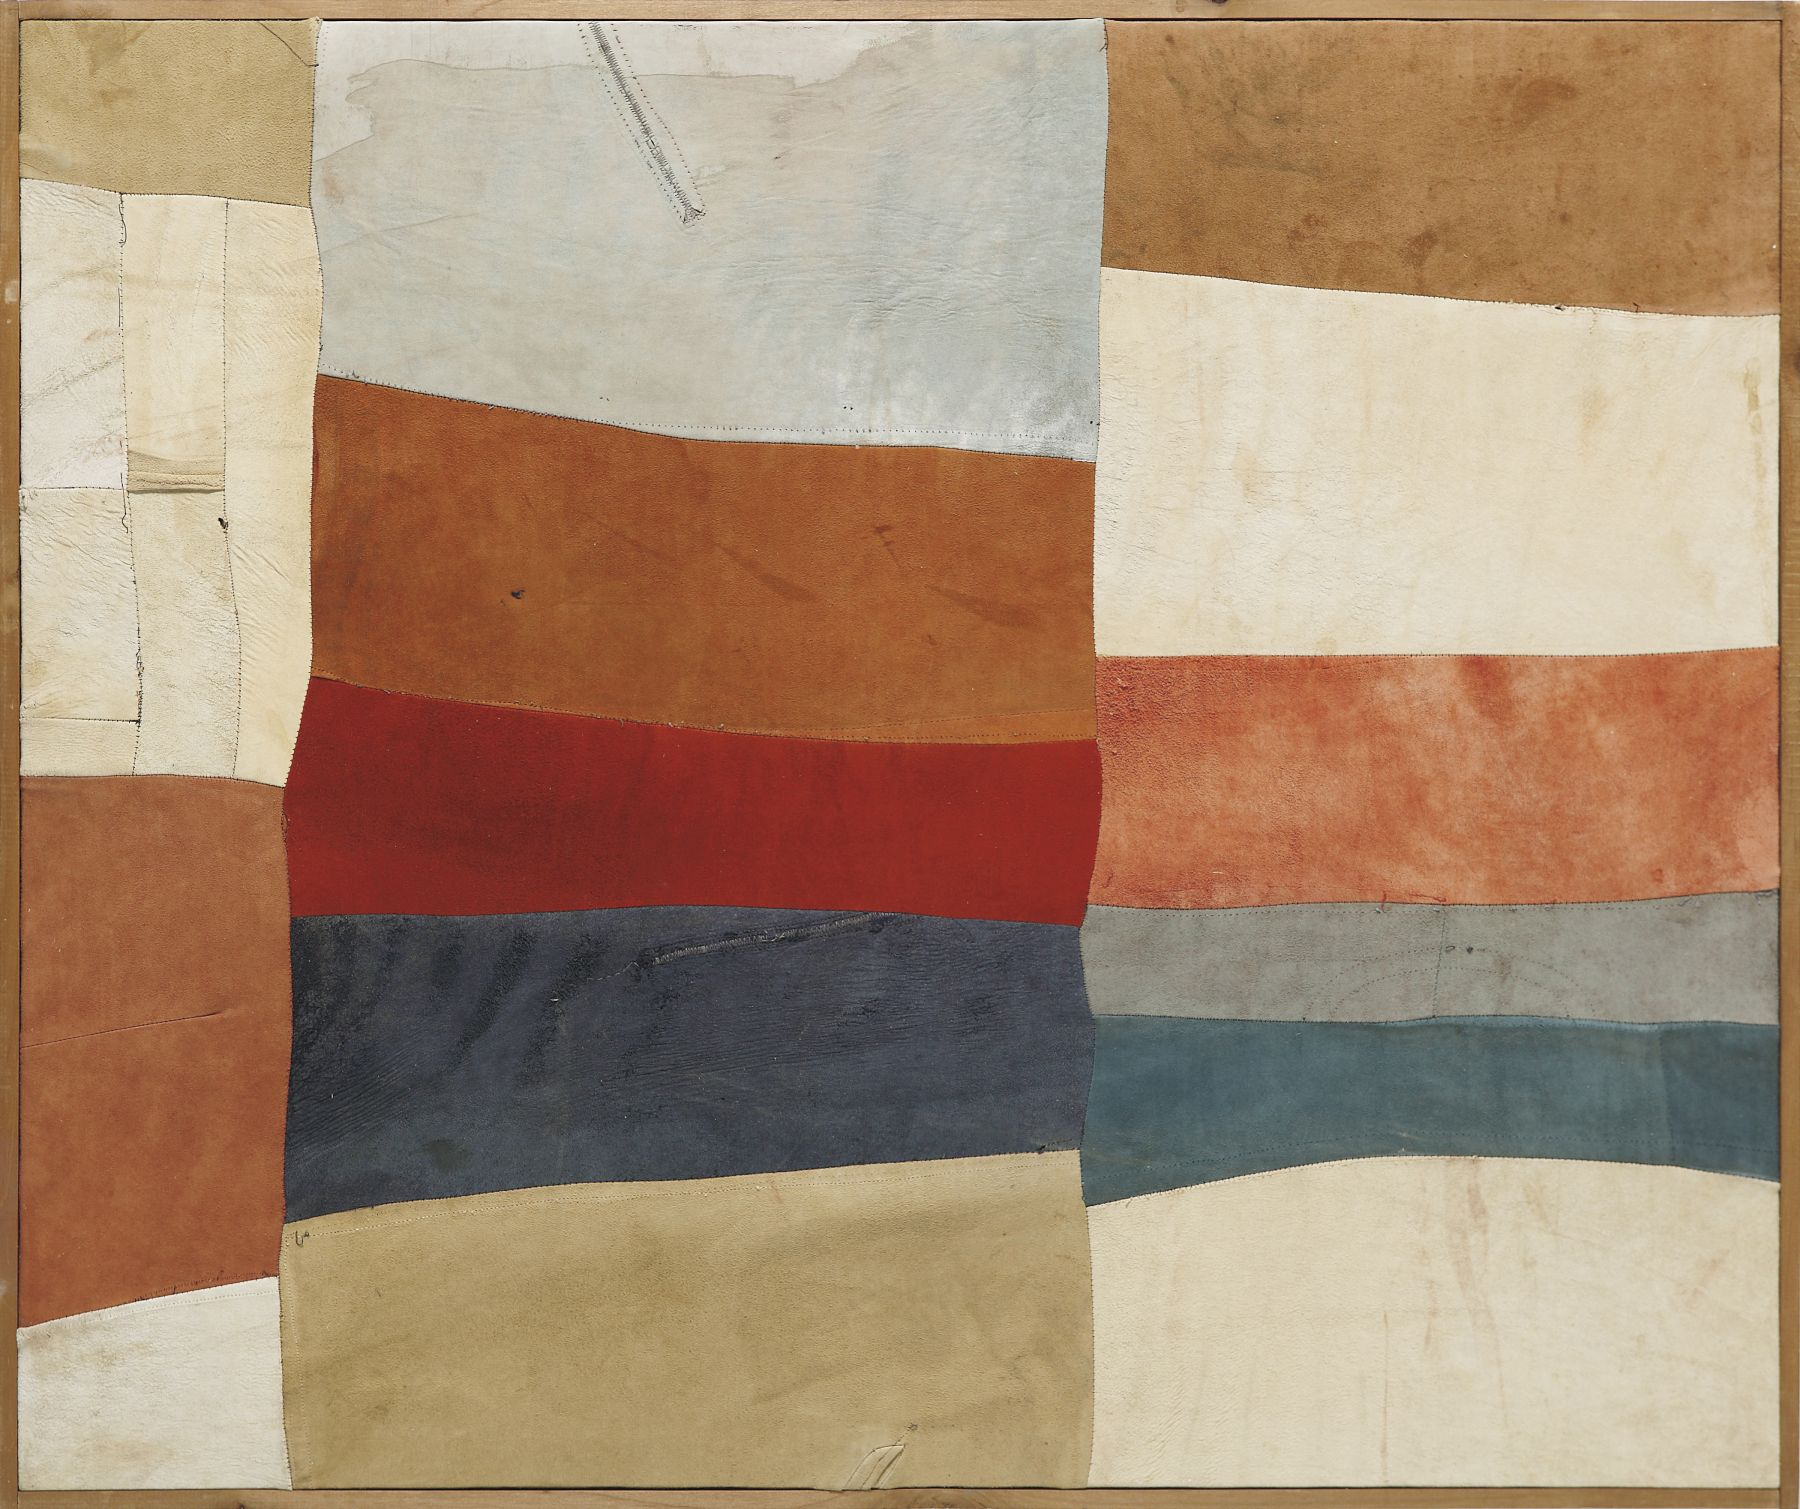 Nuvolo (Giorgio Ascani). Untitled. 1961. Dyed and sewn deerskin, 83 by 100 cm (32⅝ by 39⅜ in.)